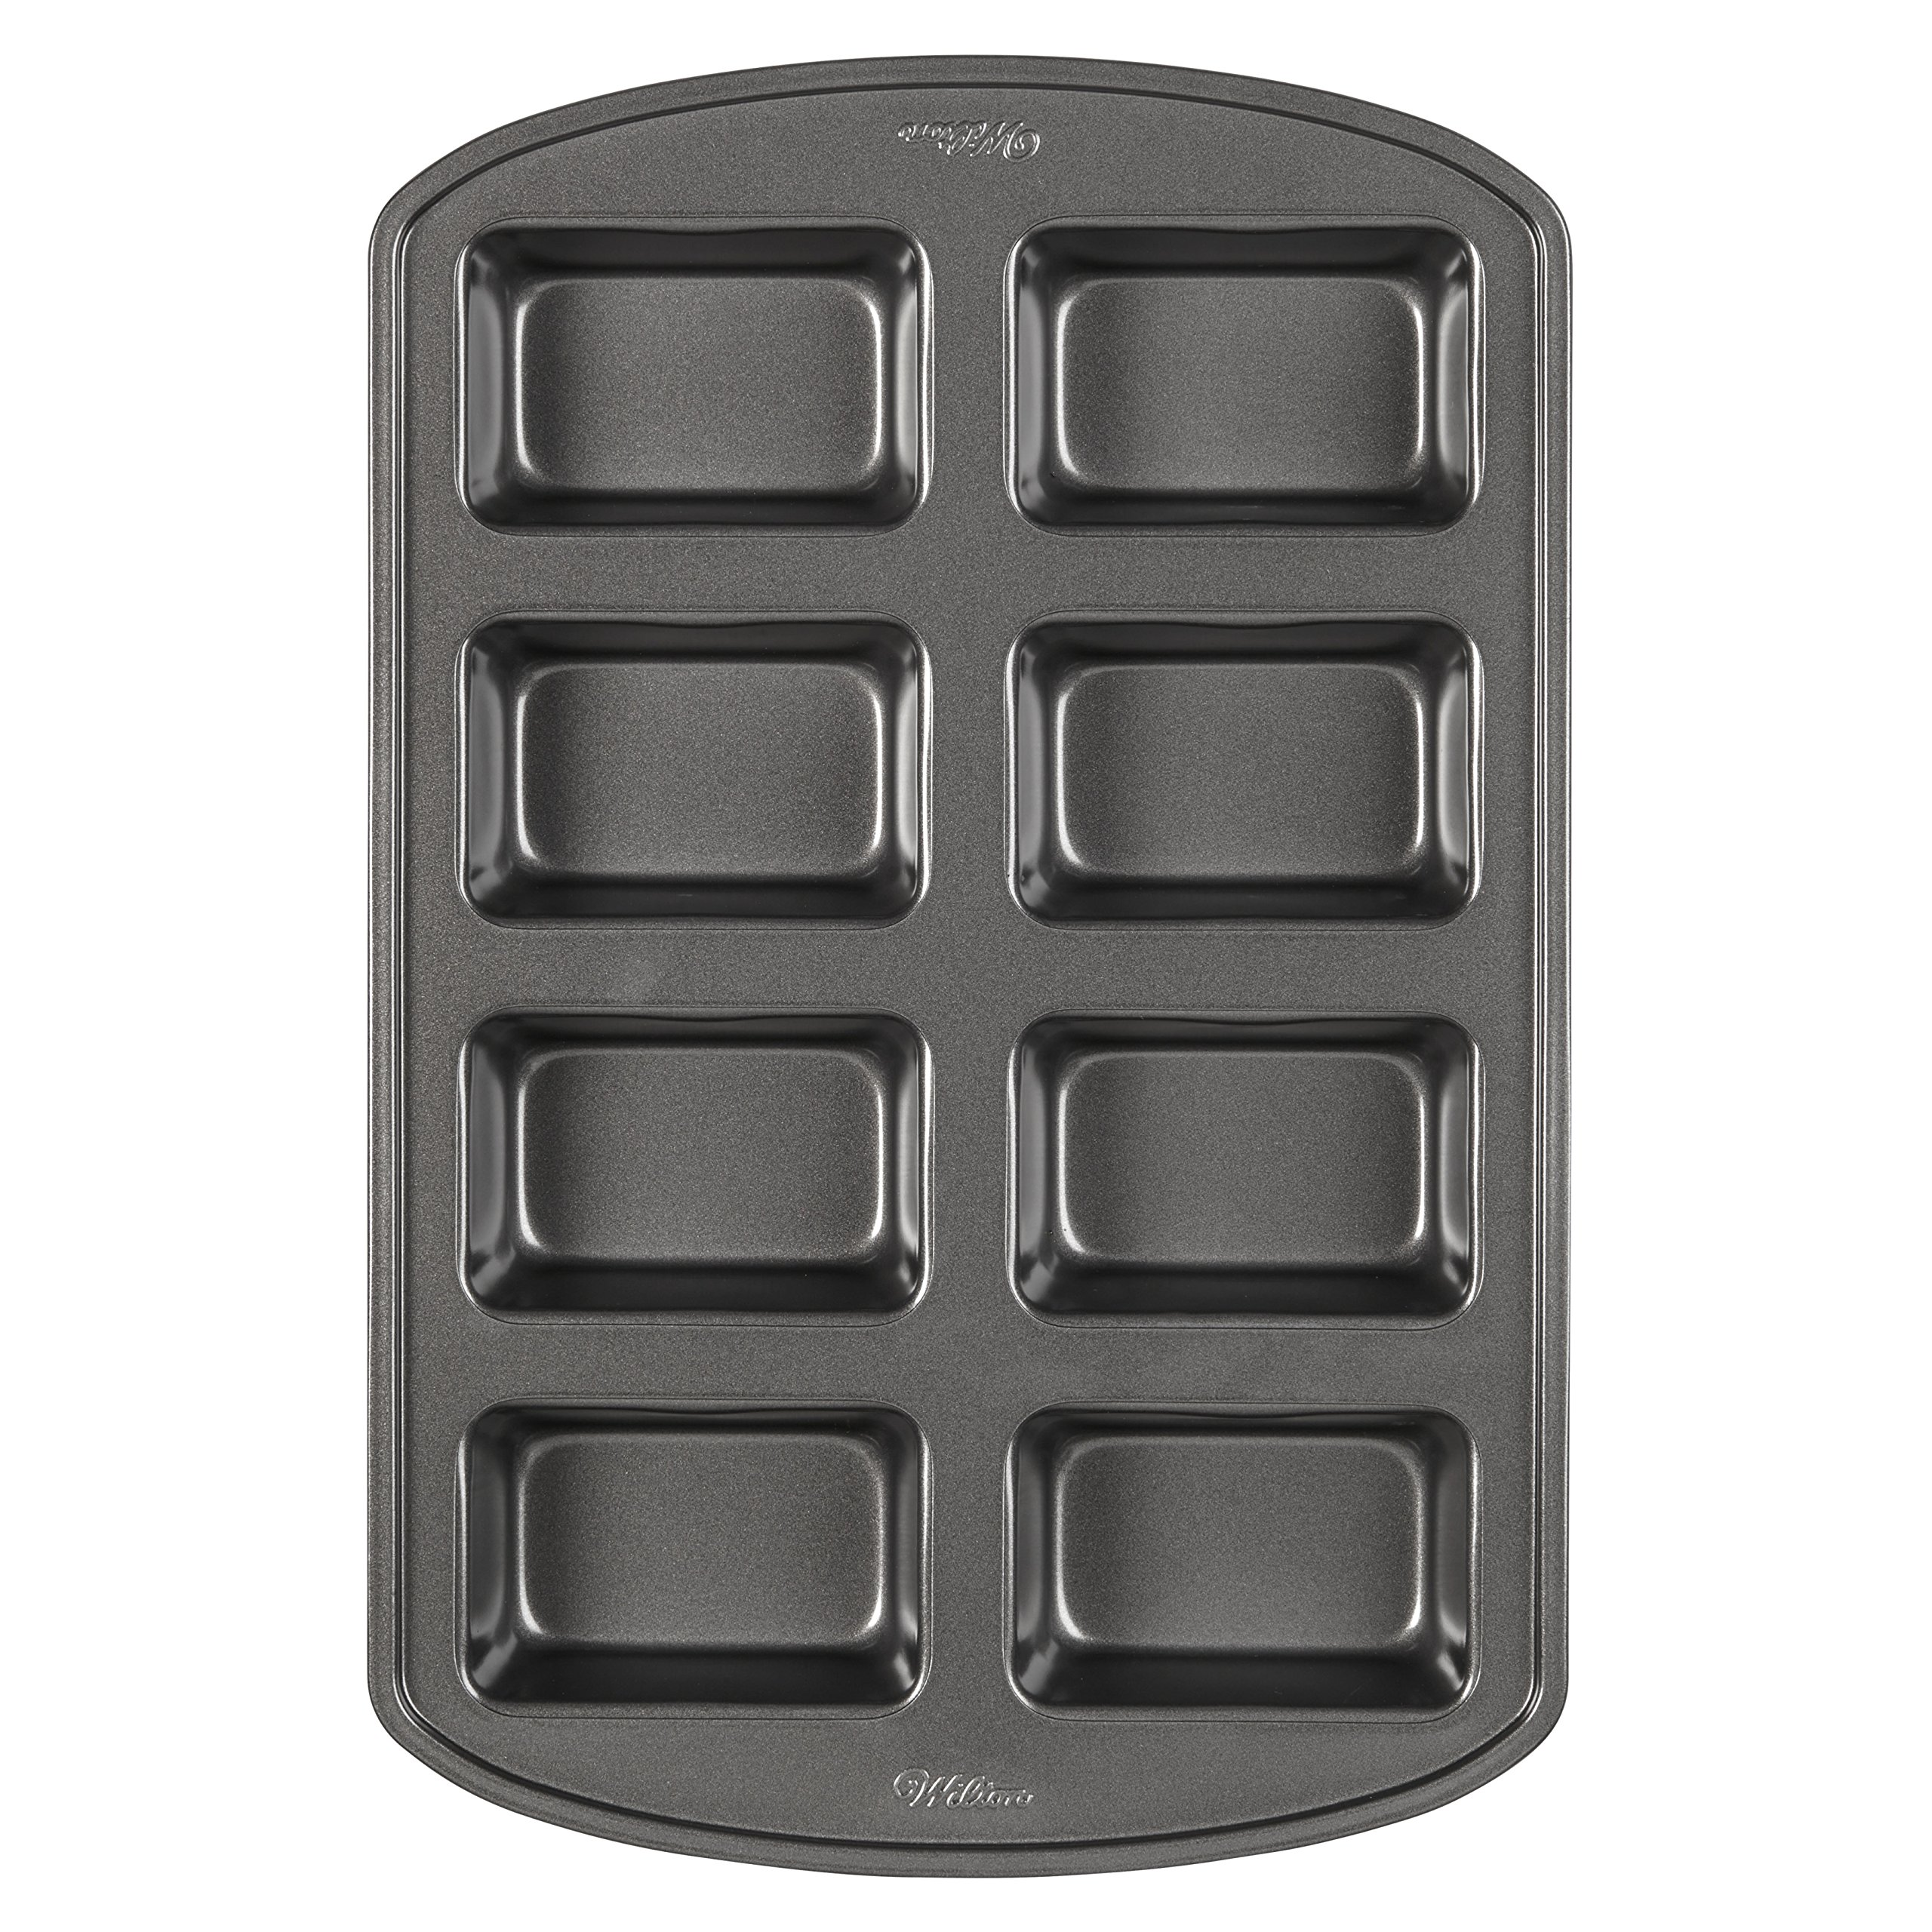 Wilton Perfect Results Non-Stick Mini Loaf Pan, 8-Cavity by Wilton